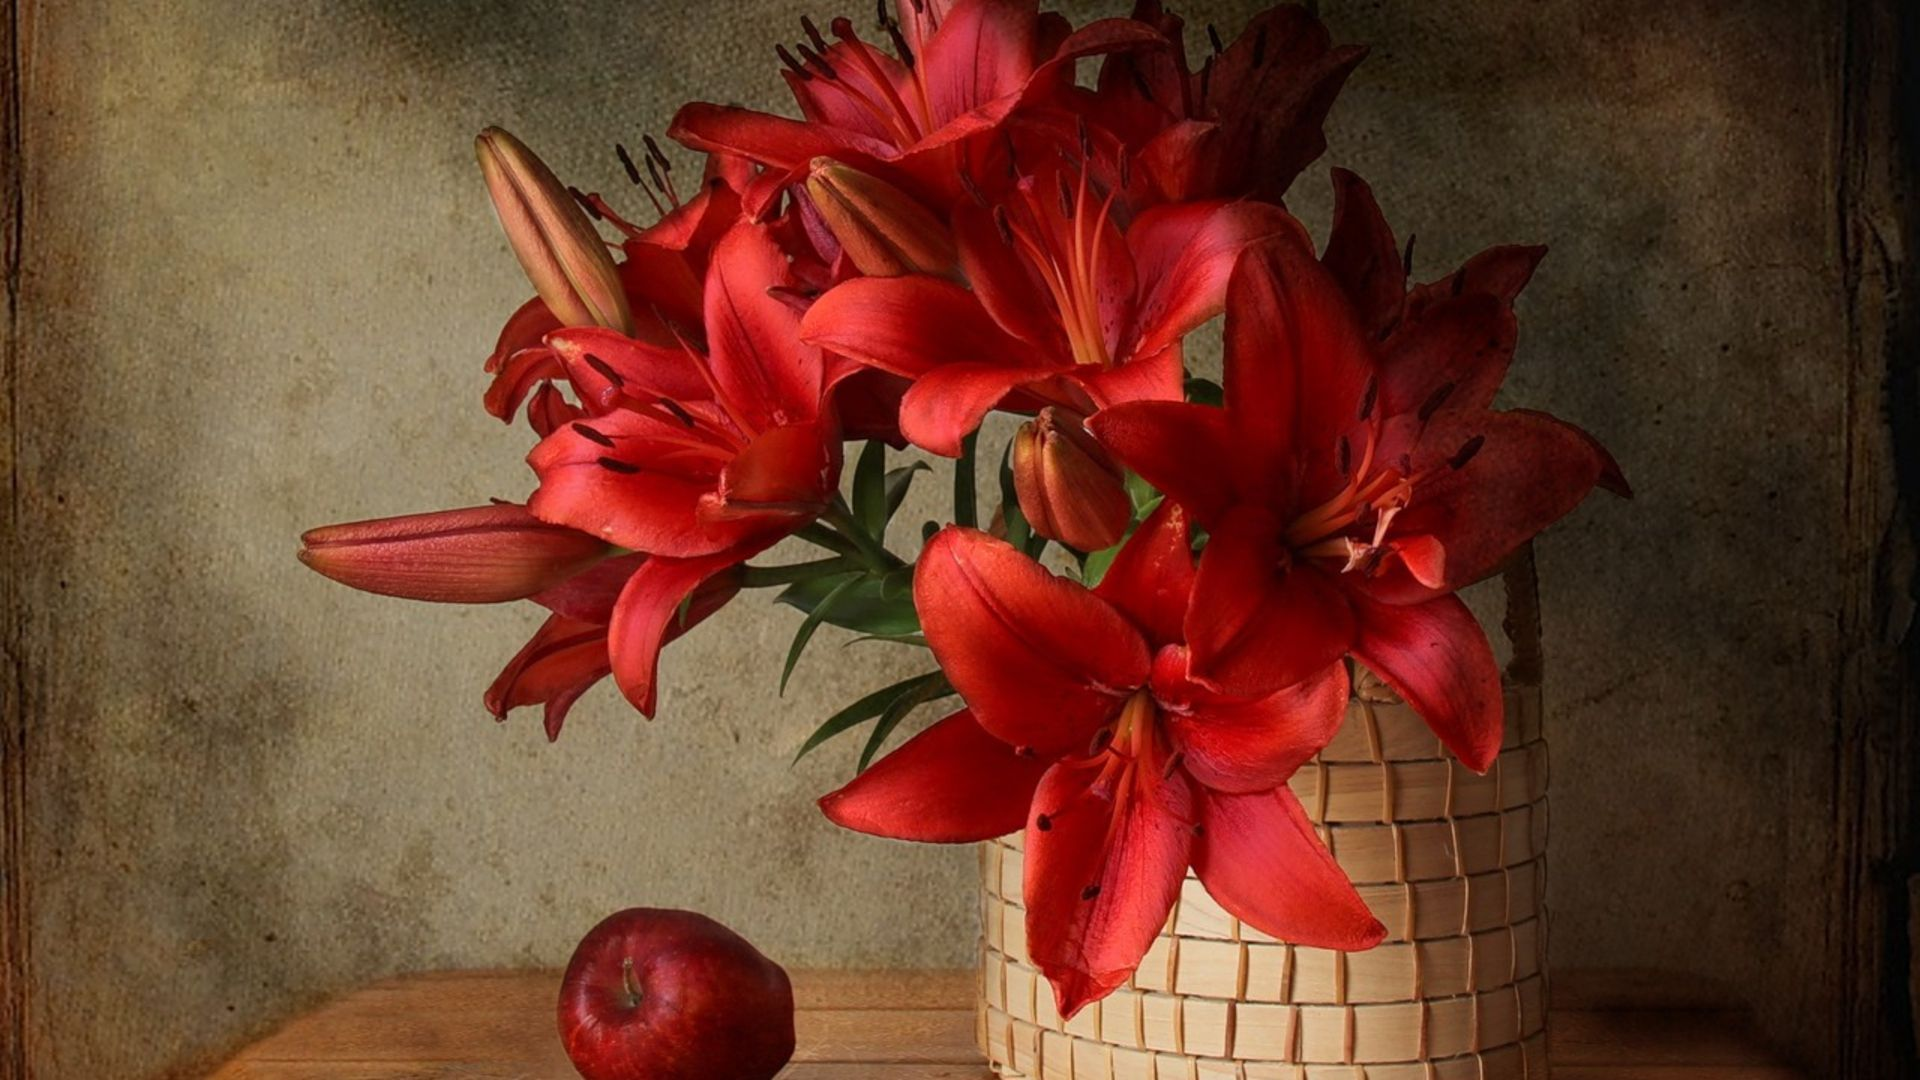 still life in red with tulips